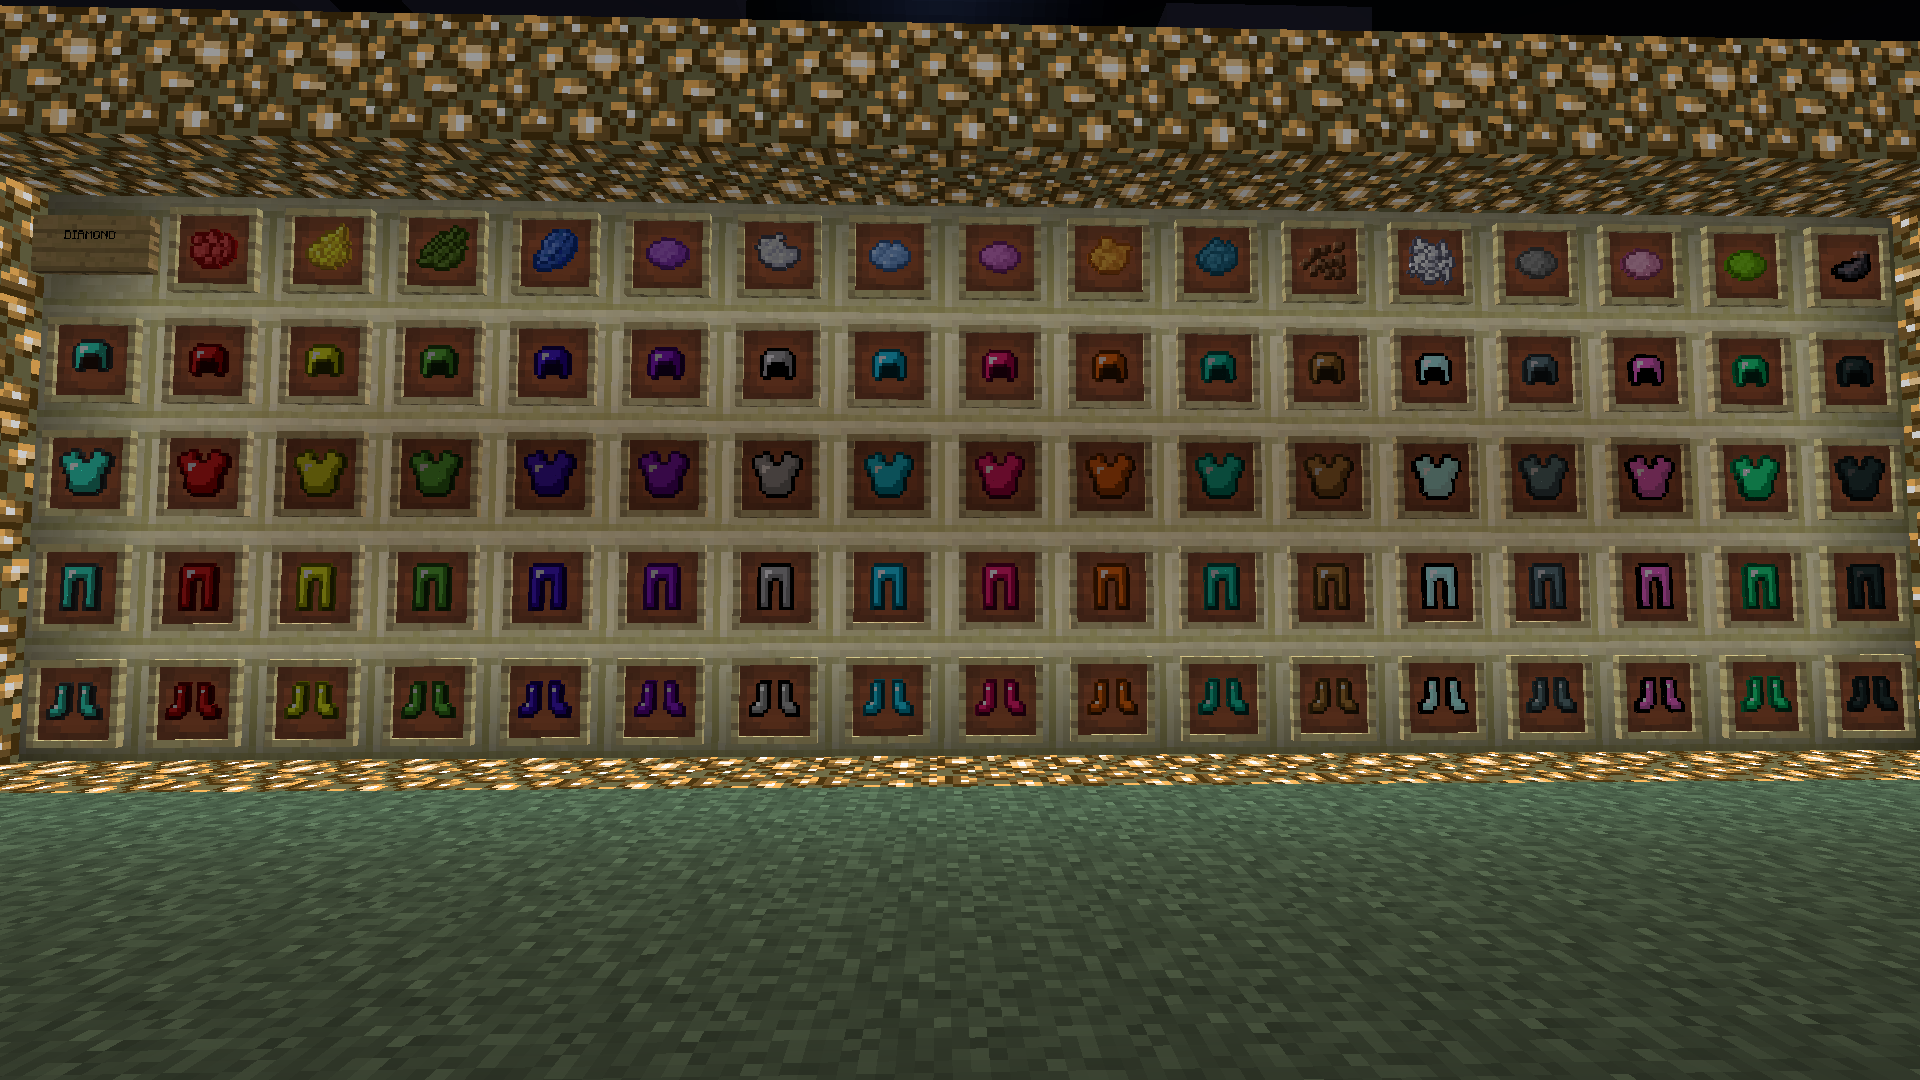 http://cdn.file-minecraft.com/Mods/Colorful-Armor-Mod-4.png